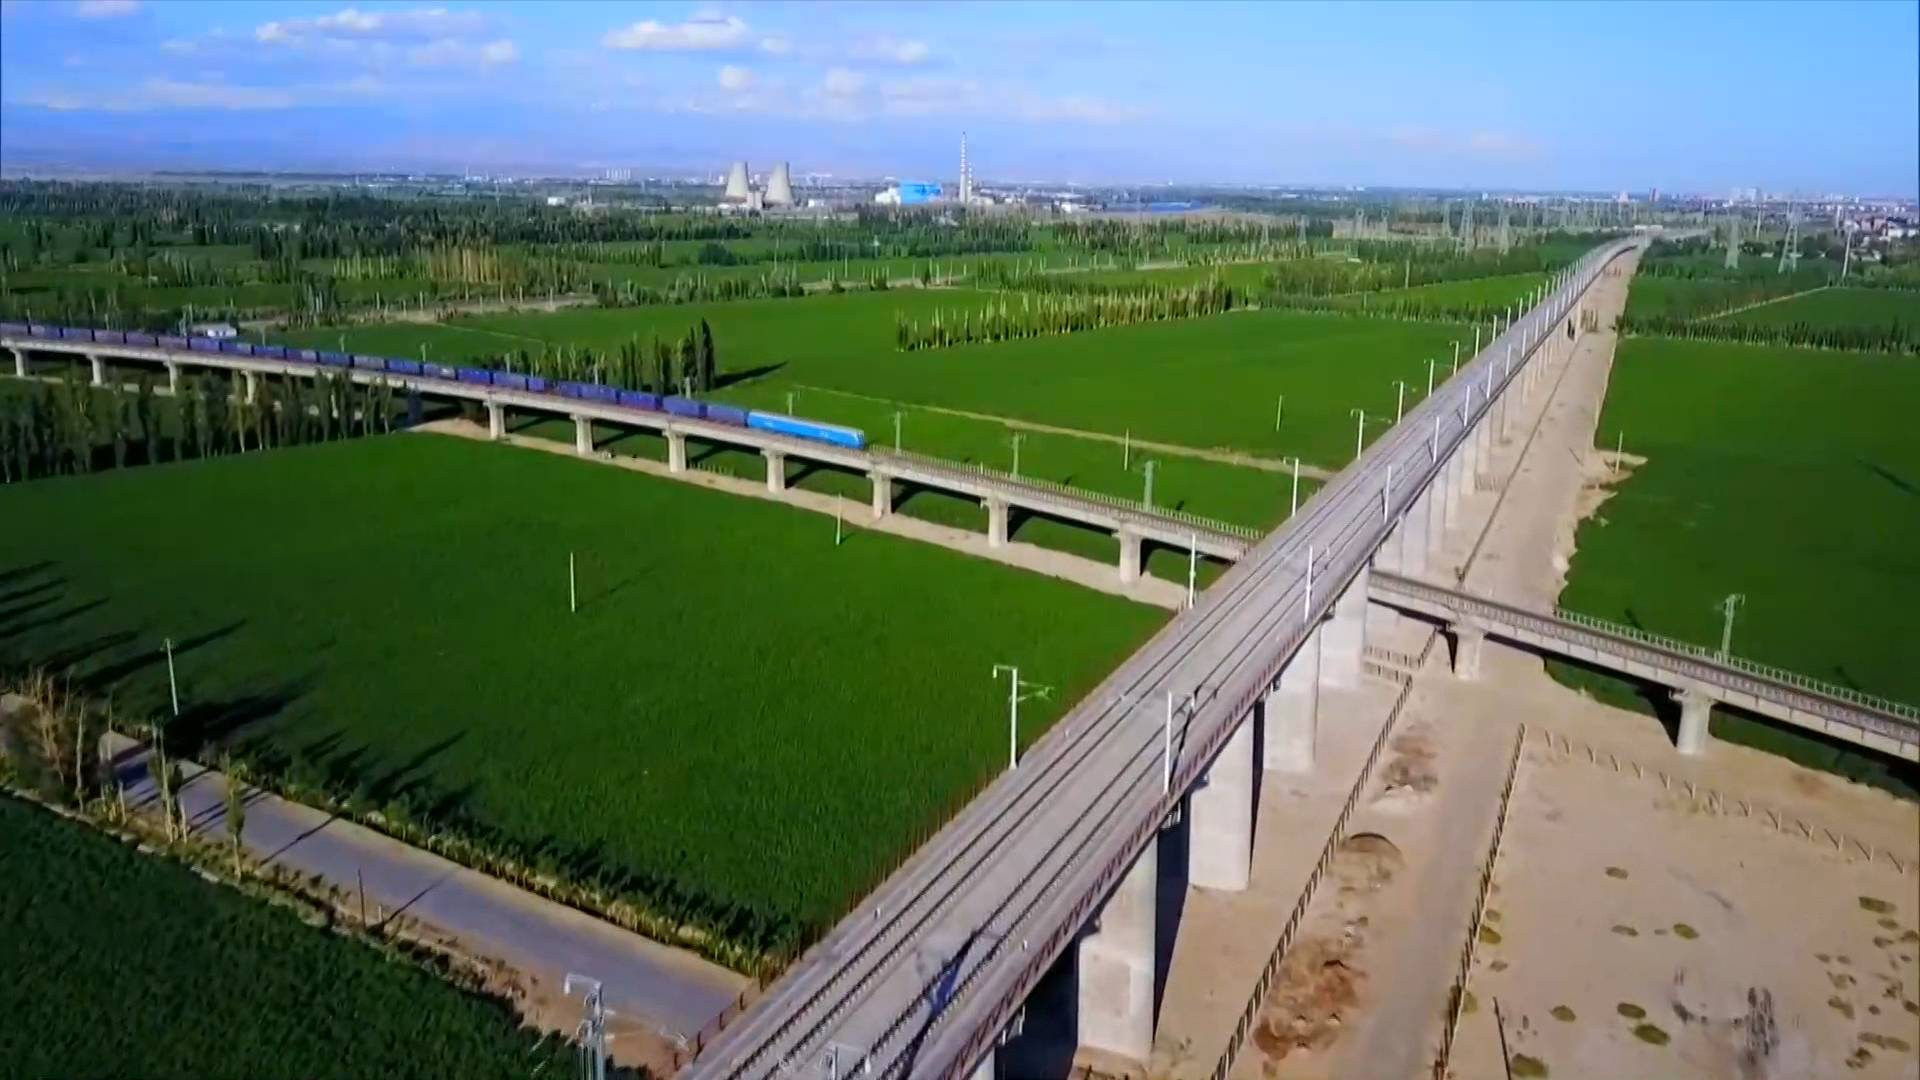 GLOBALink | China's Xinjiang achieves high-quality economic development: official